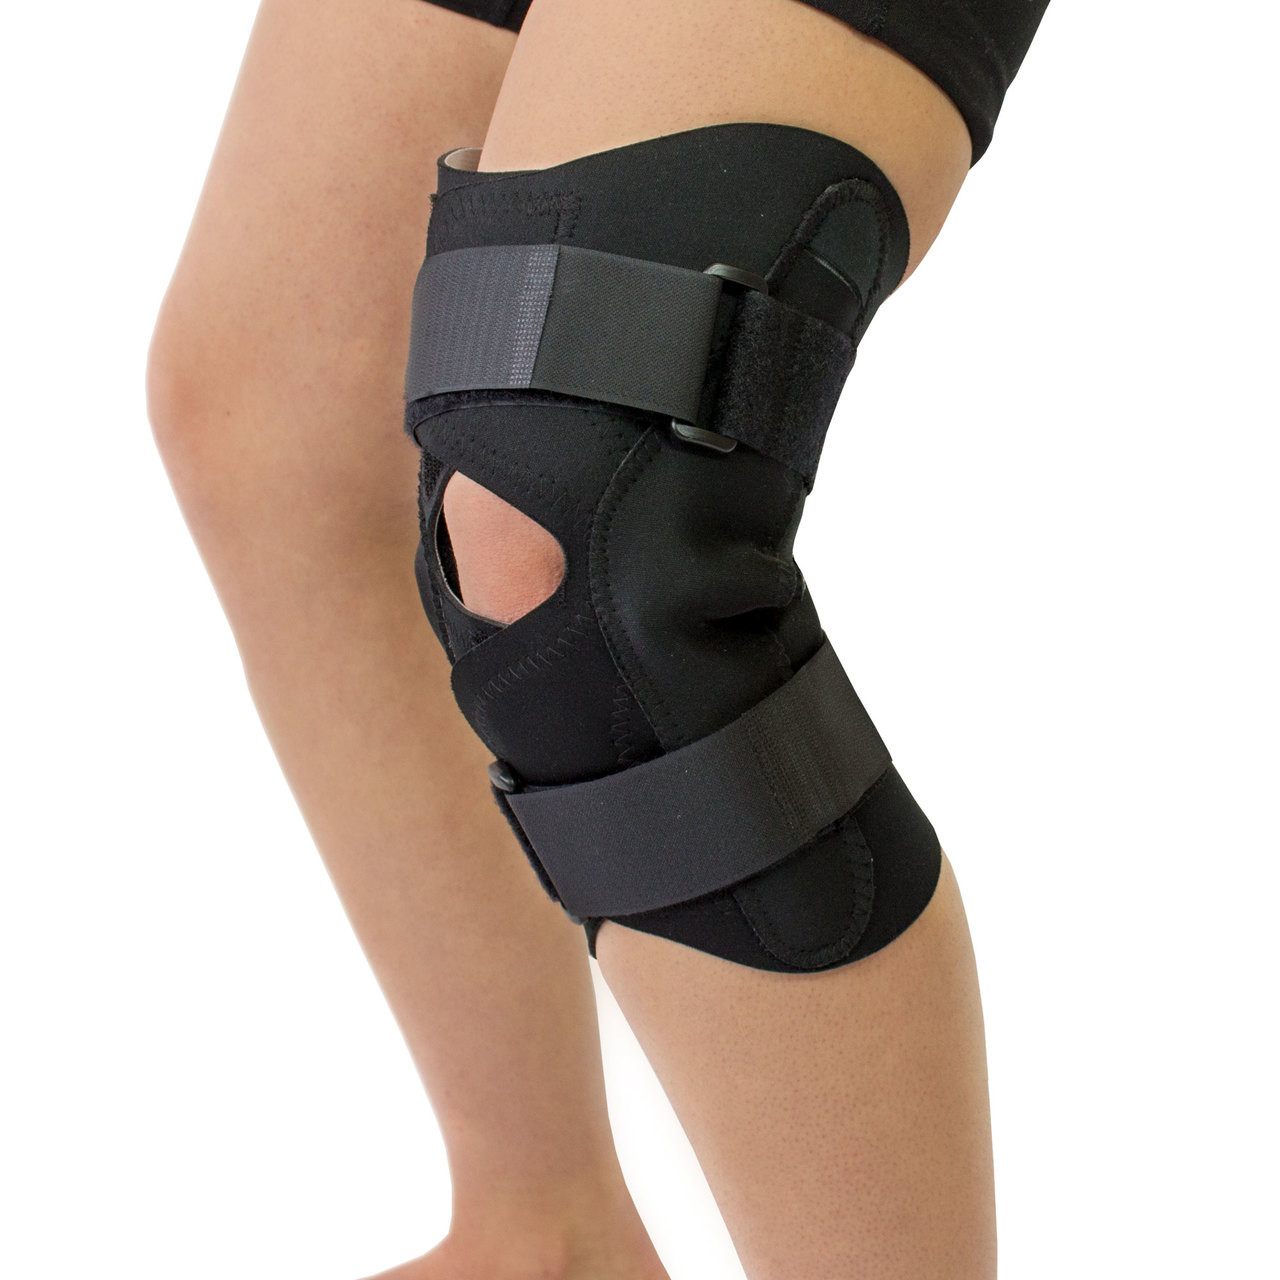 Obesity Joint Pain Support Wraparound Hinged Knee Brace